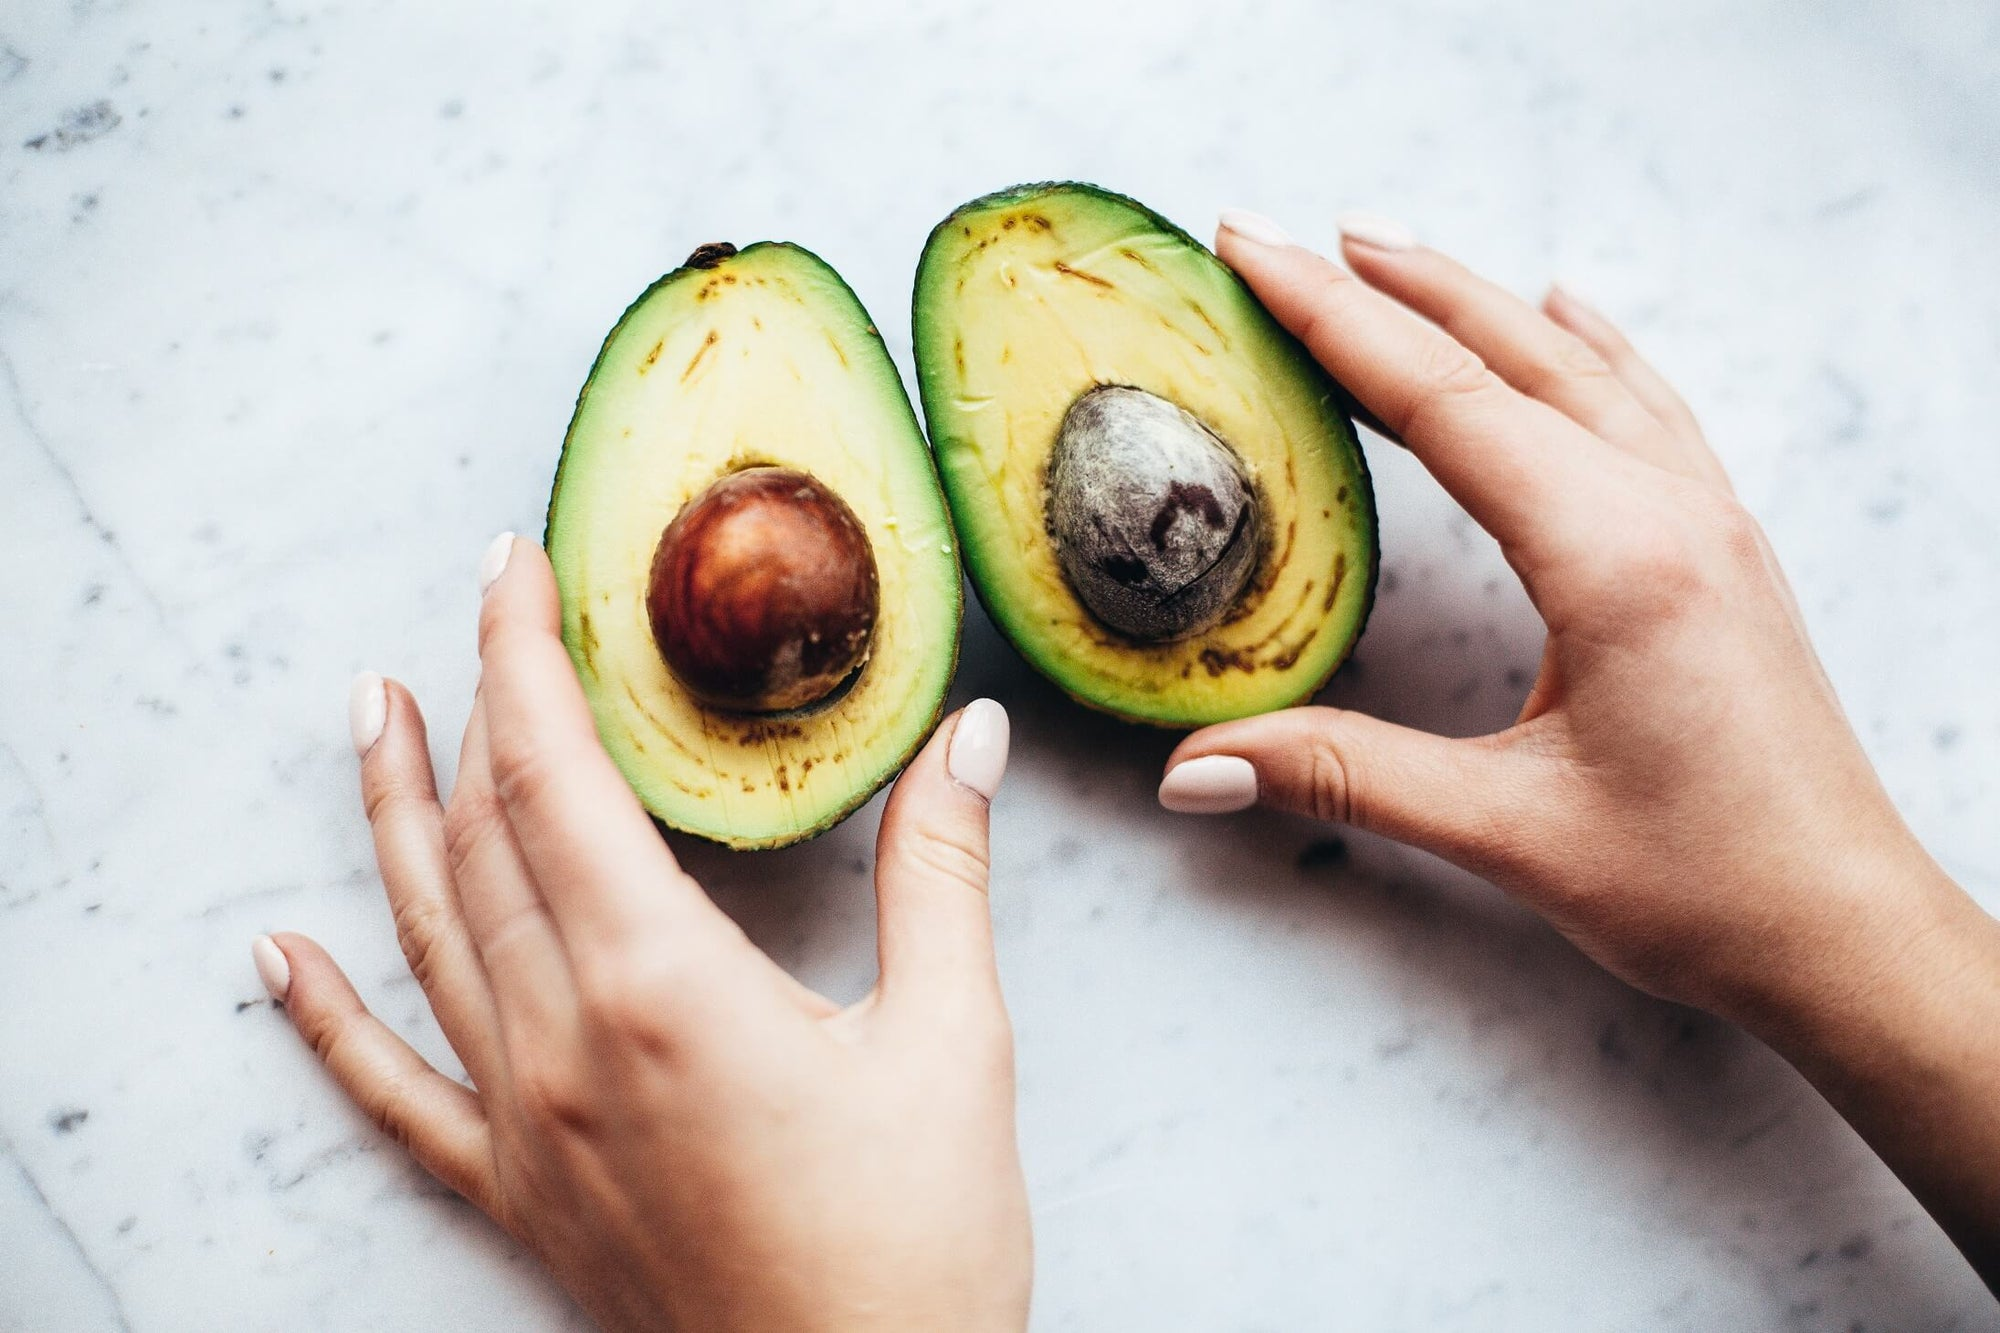 Hands holding a healthy avocado sliced in half